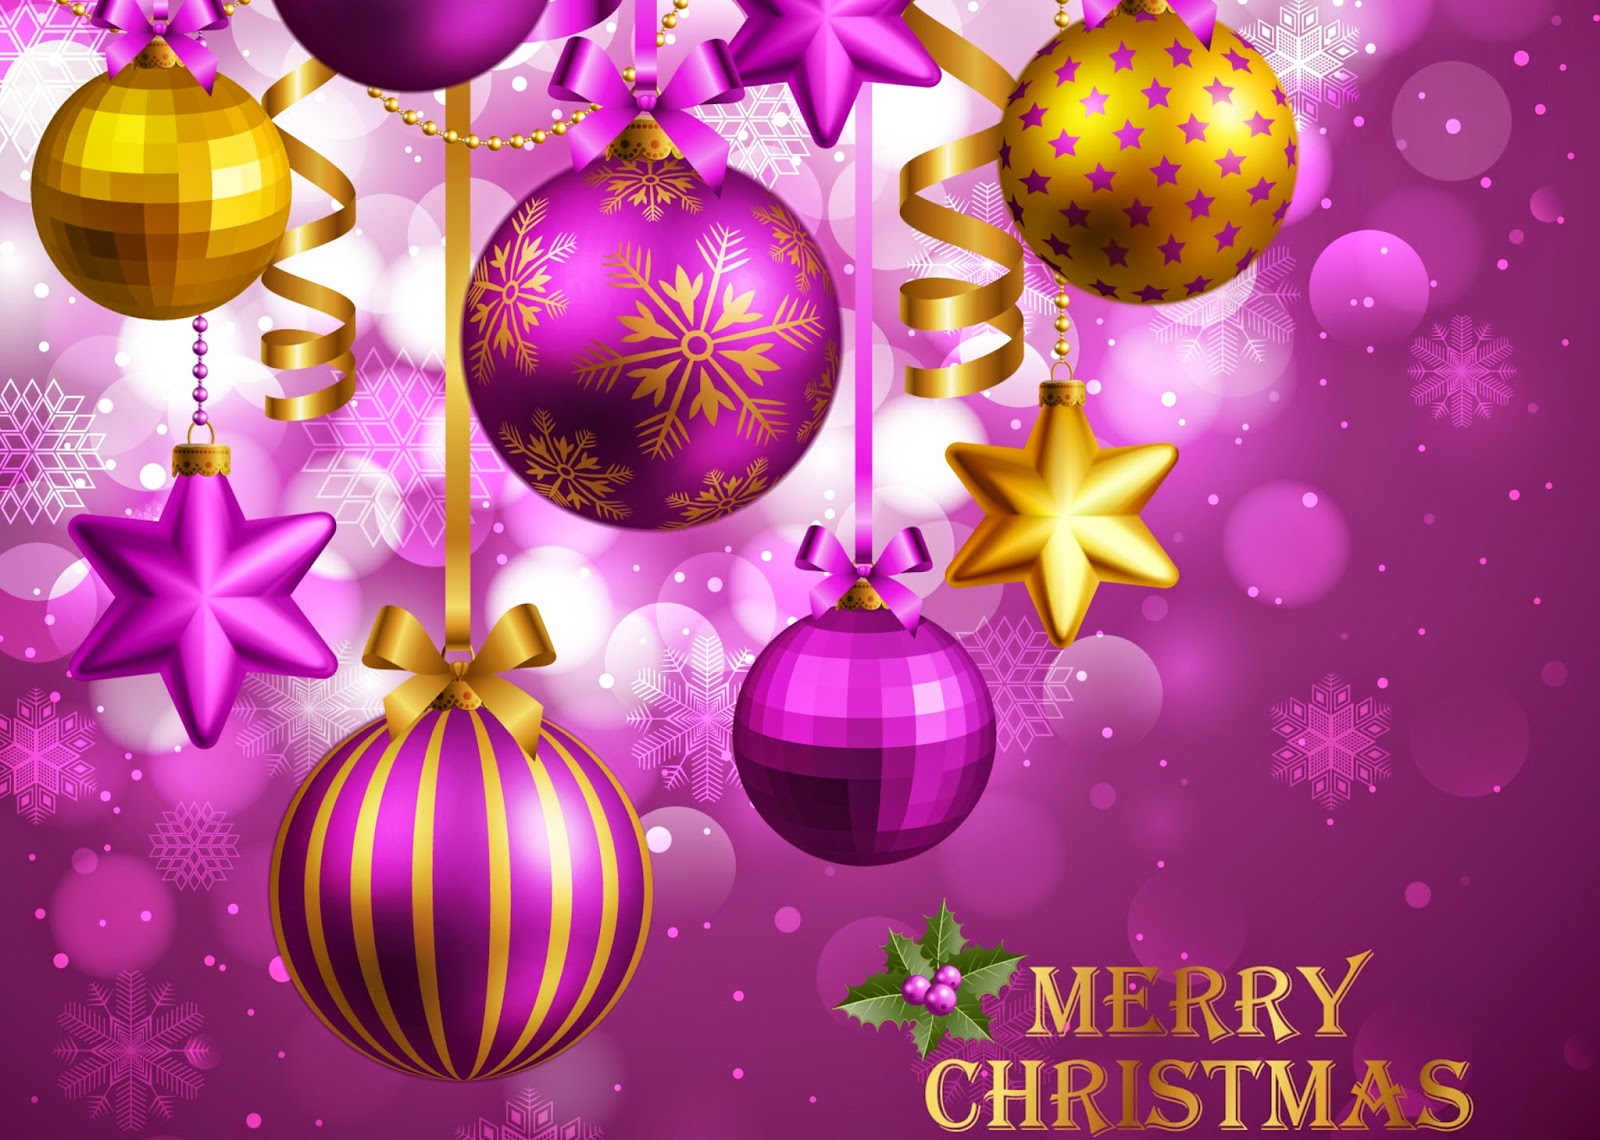 christmas-baubles-HD-wallpapers-with-merry-Christmas-text-golden-theme-image-2800x1995.jpg